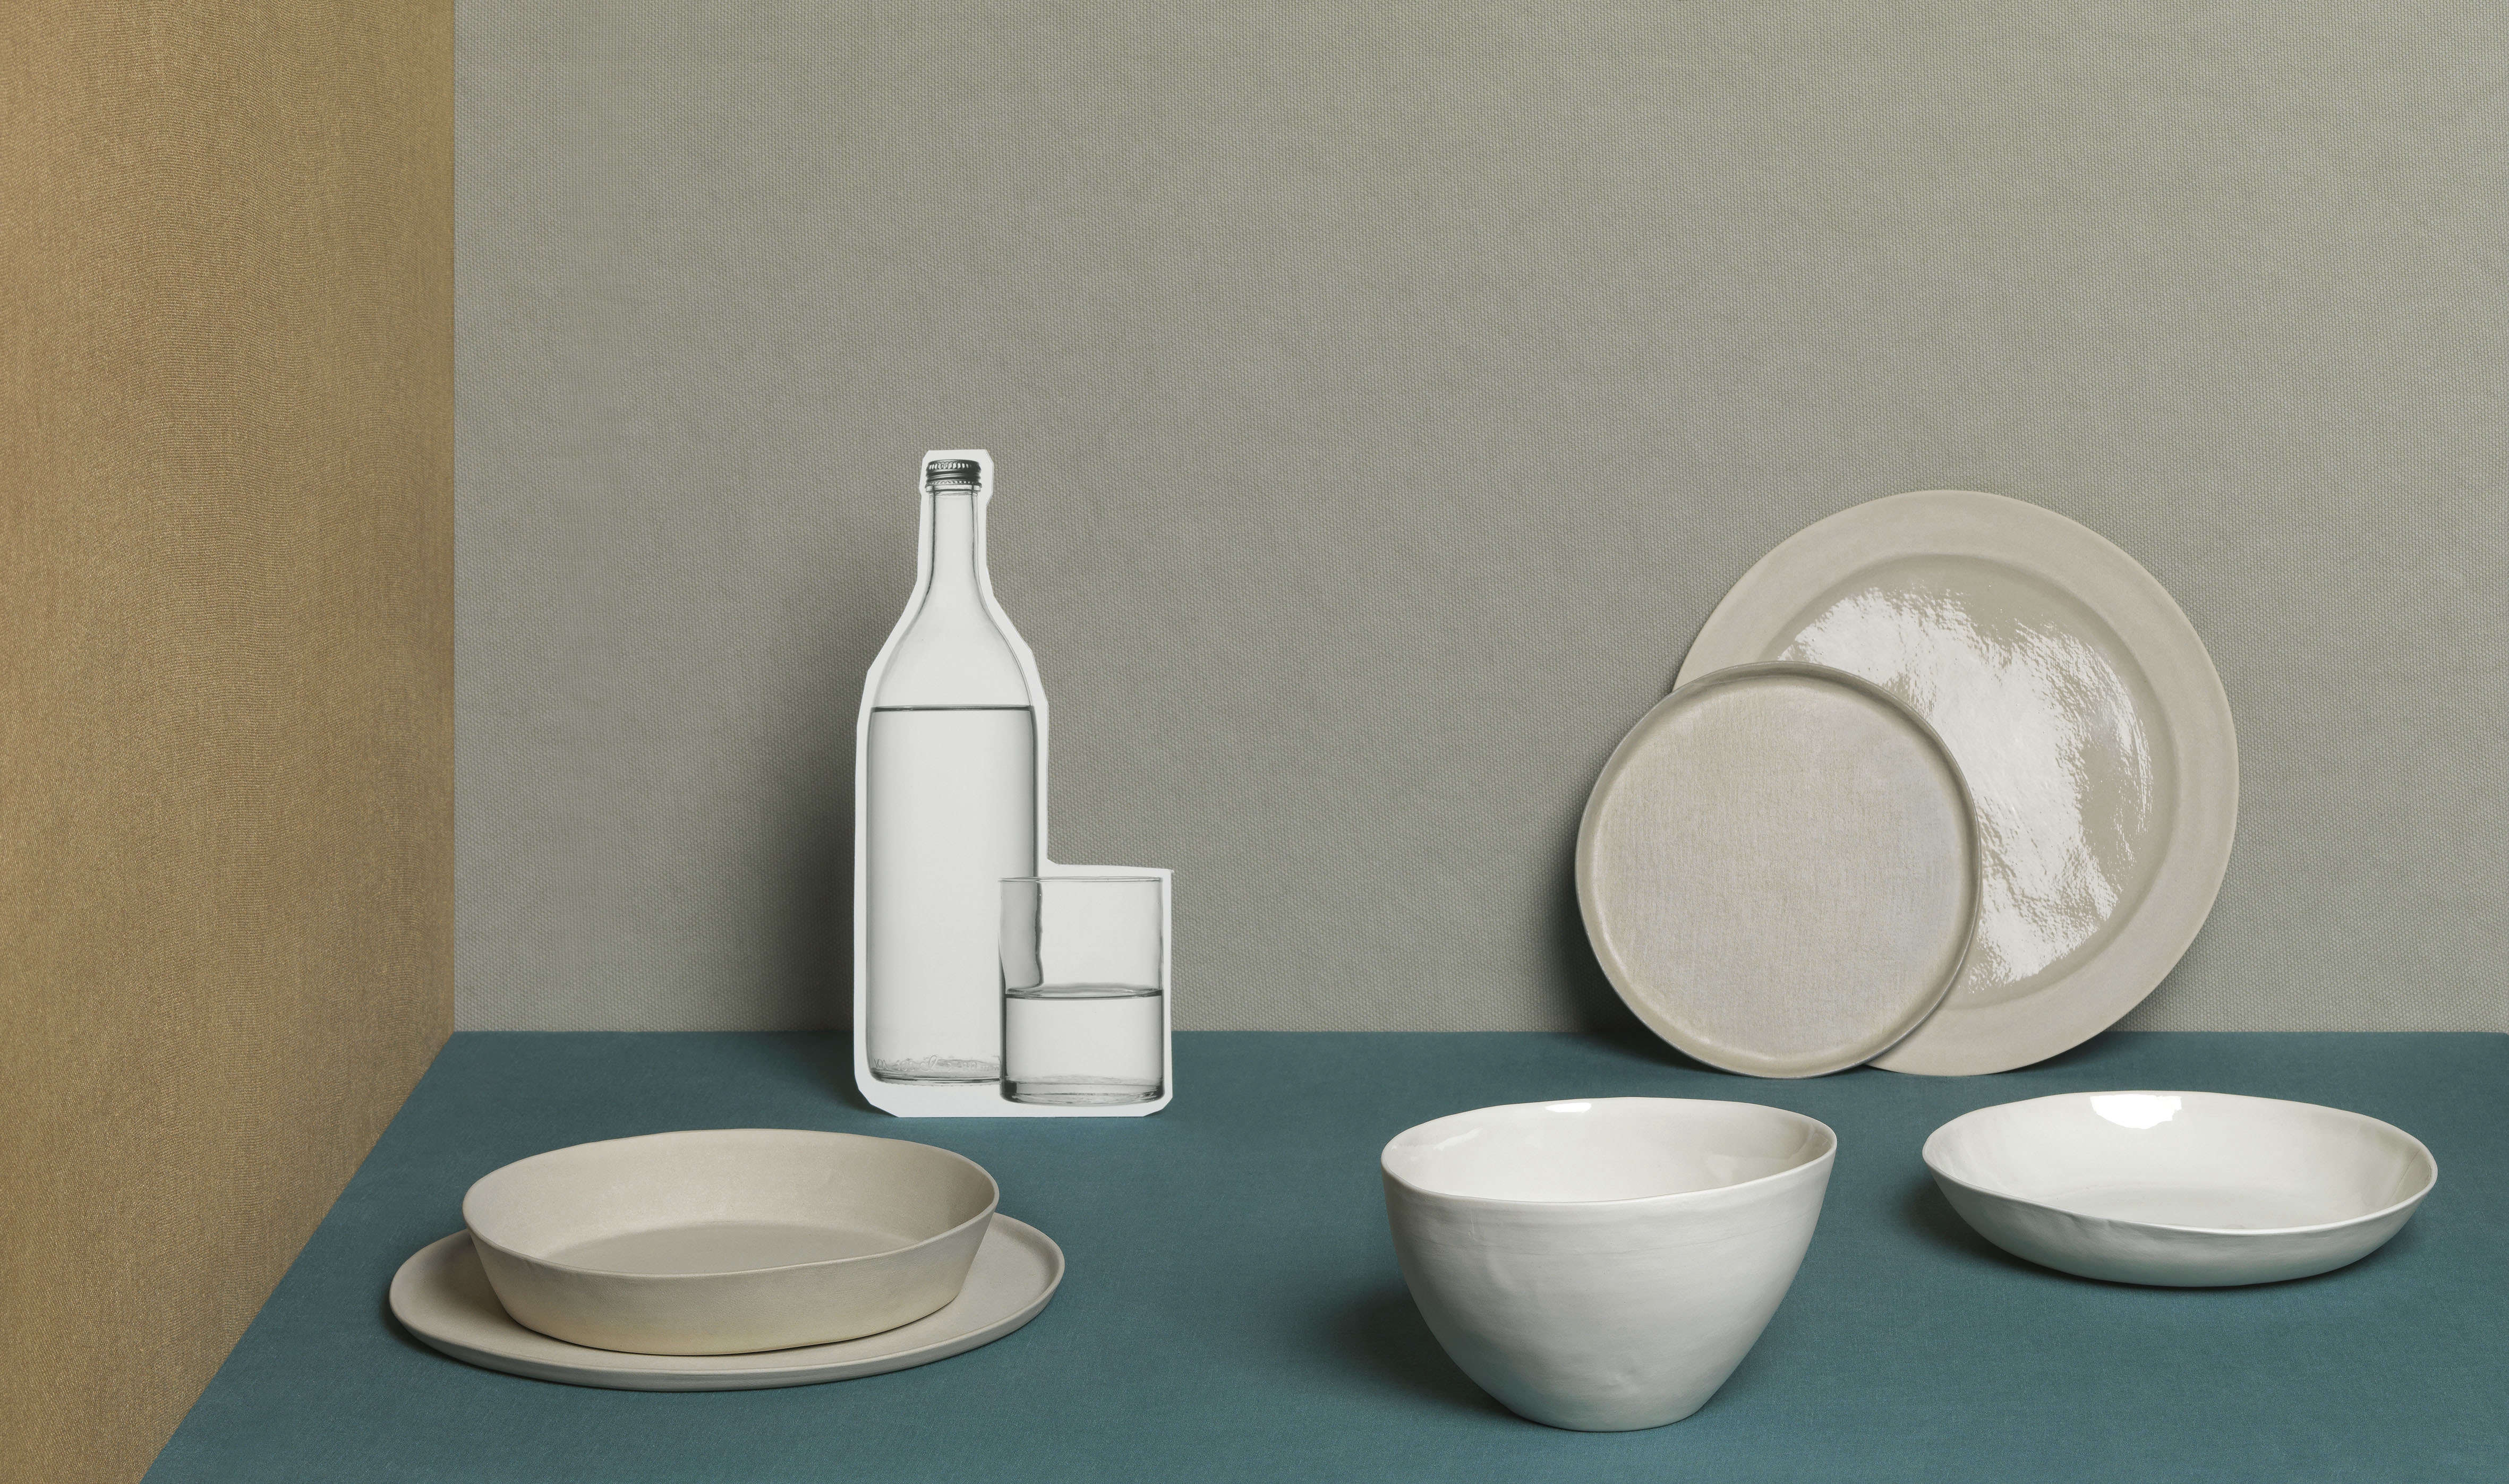 Fabric Effect Ceramics from Society Limonta